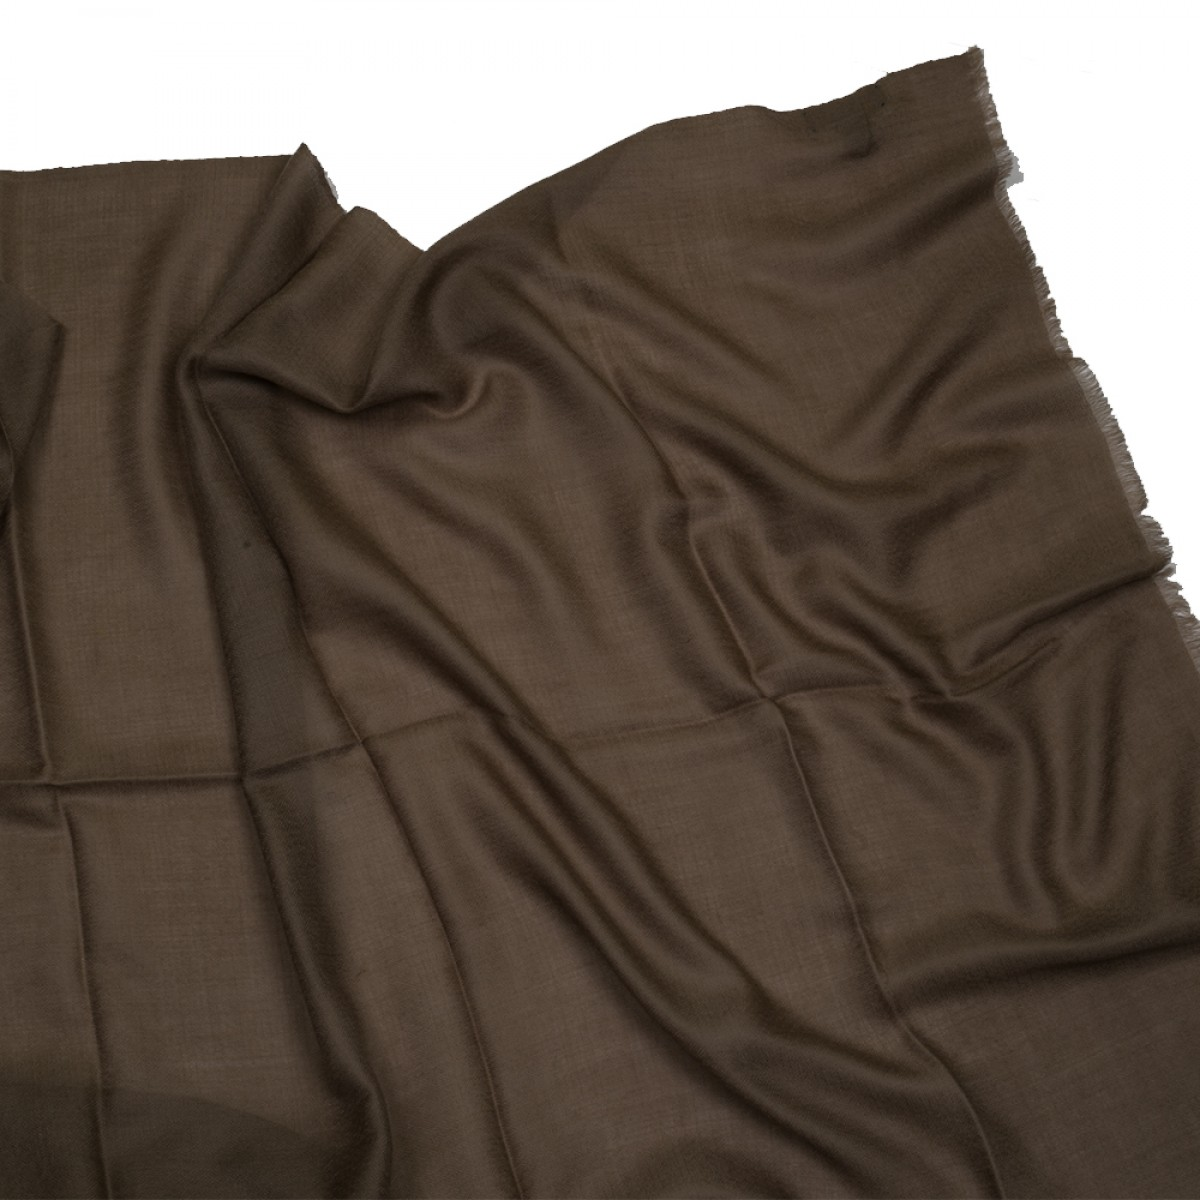 Plain Pashmina Stole - Dark Brown